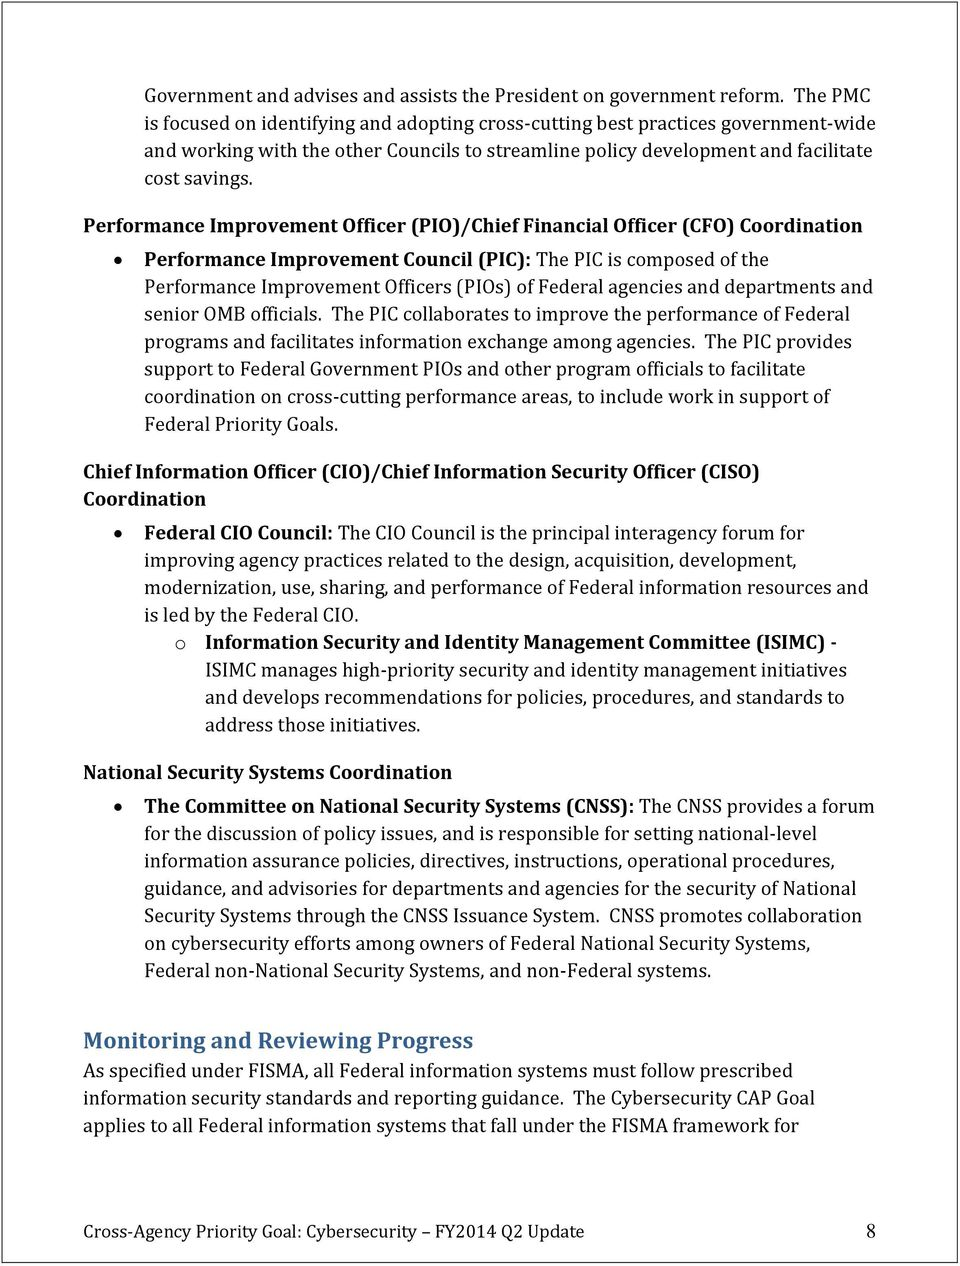 ormance Improvement Officer (PIO)/Chief Financial Officer (CFO) Coordination ormance Improvement Council (PIC): The PIC is composed of the ormance Improvement Officers (PIOs) of Federal agencies and